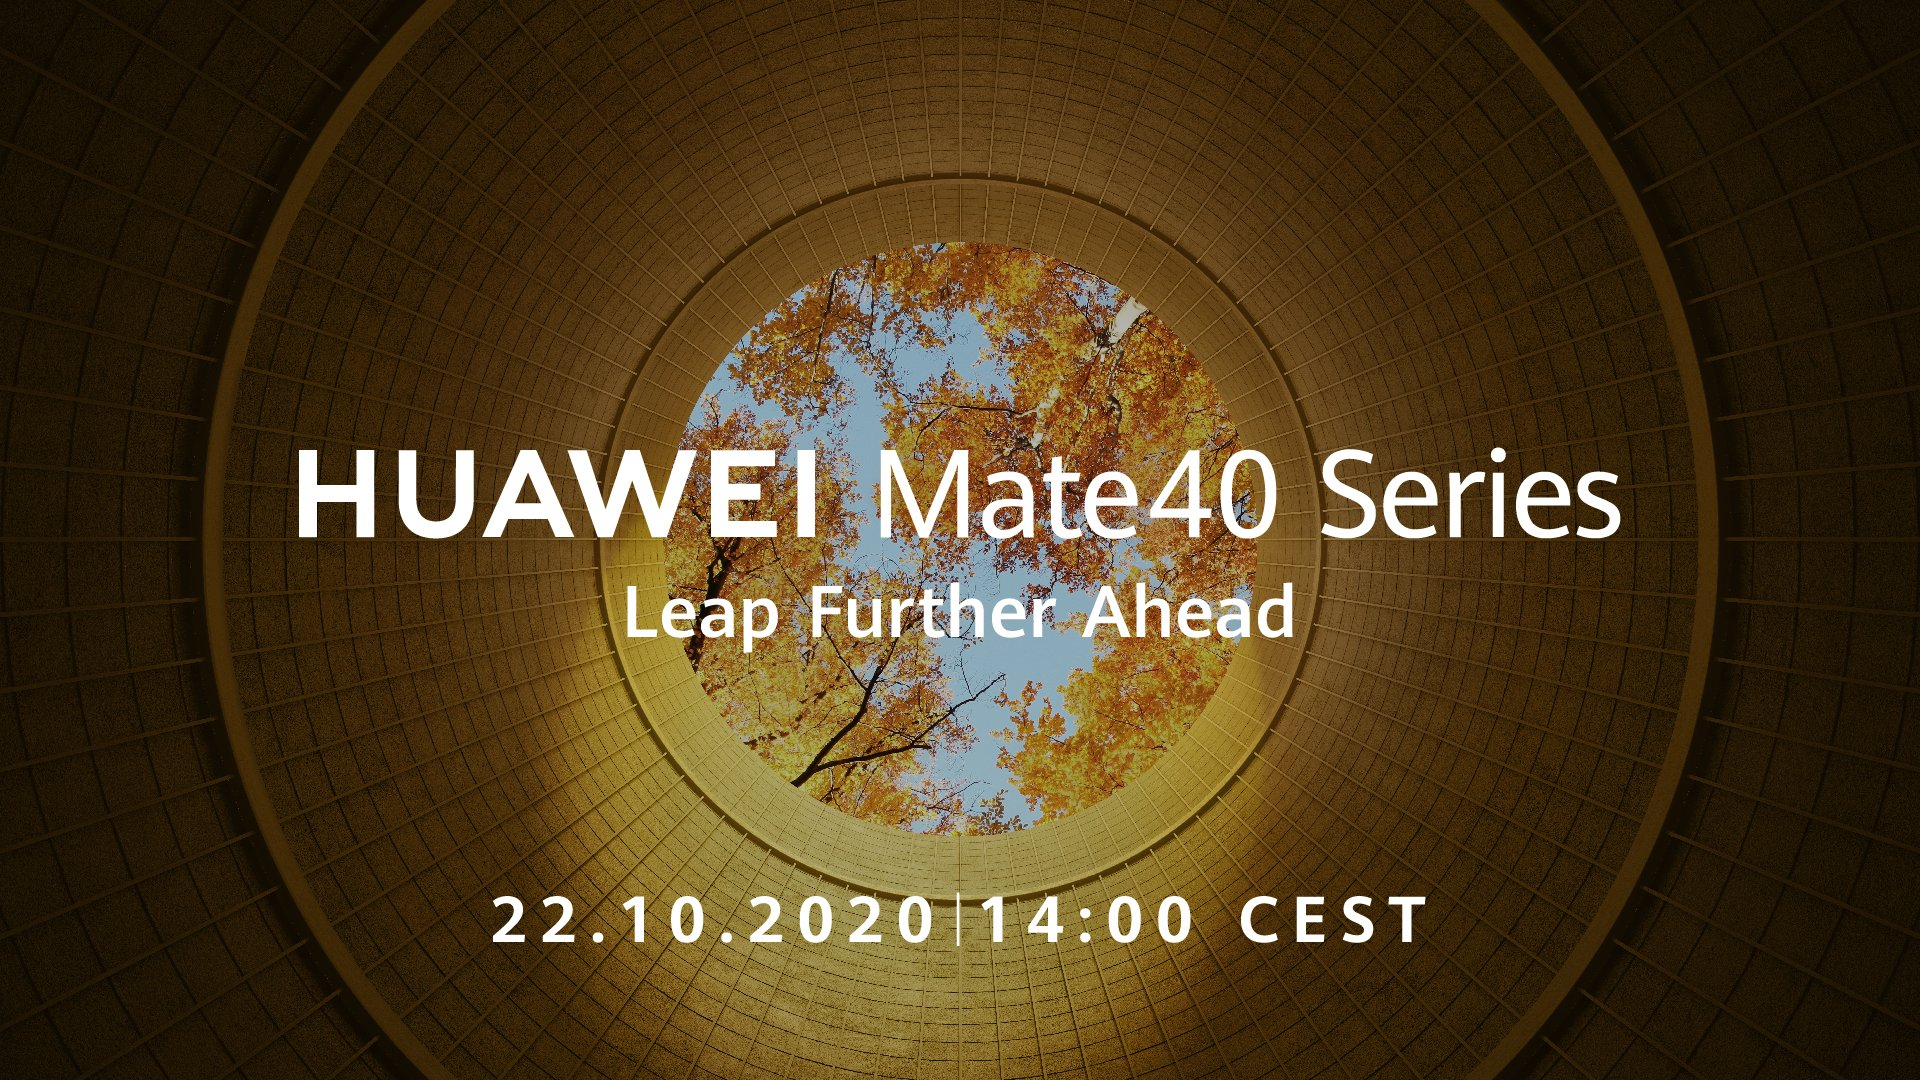 Huawei Mate 40 Series Confirmed To Be Launched on 22 October